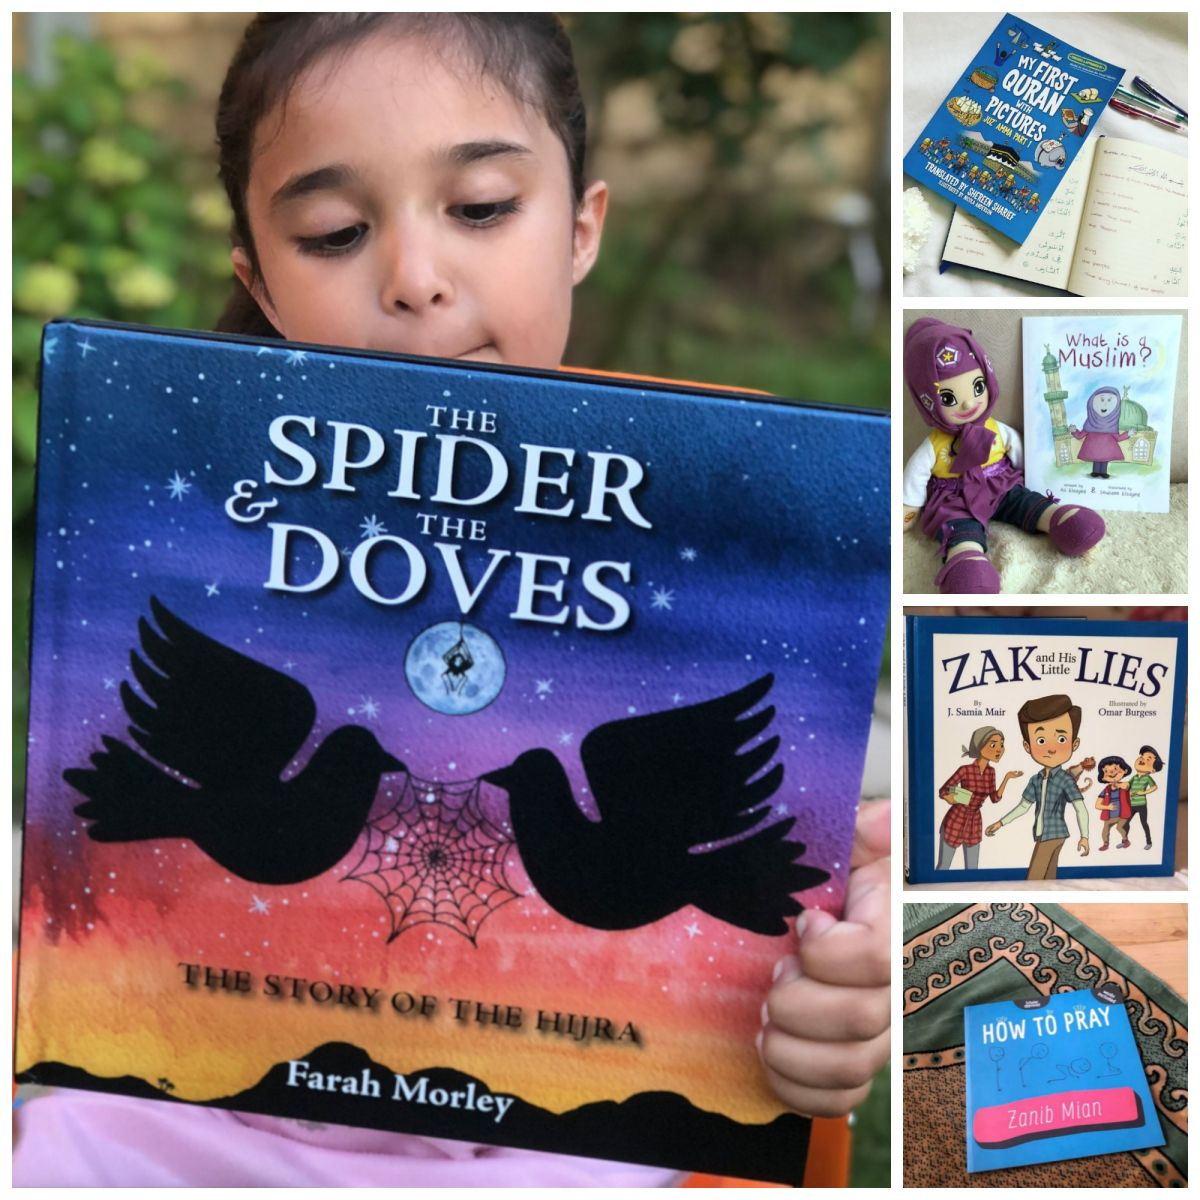 Our Top 5 Childrens Islamic Books of 2018